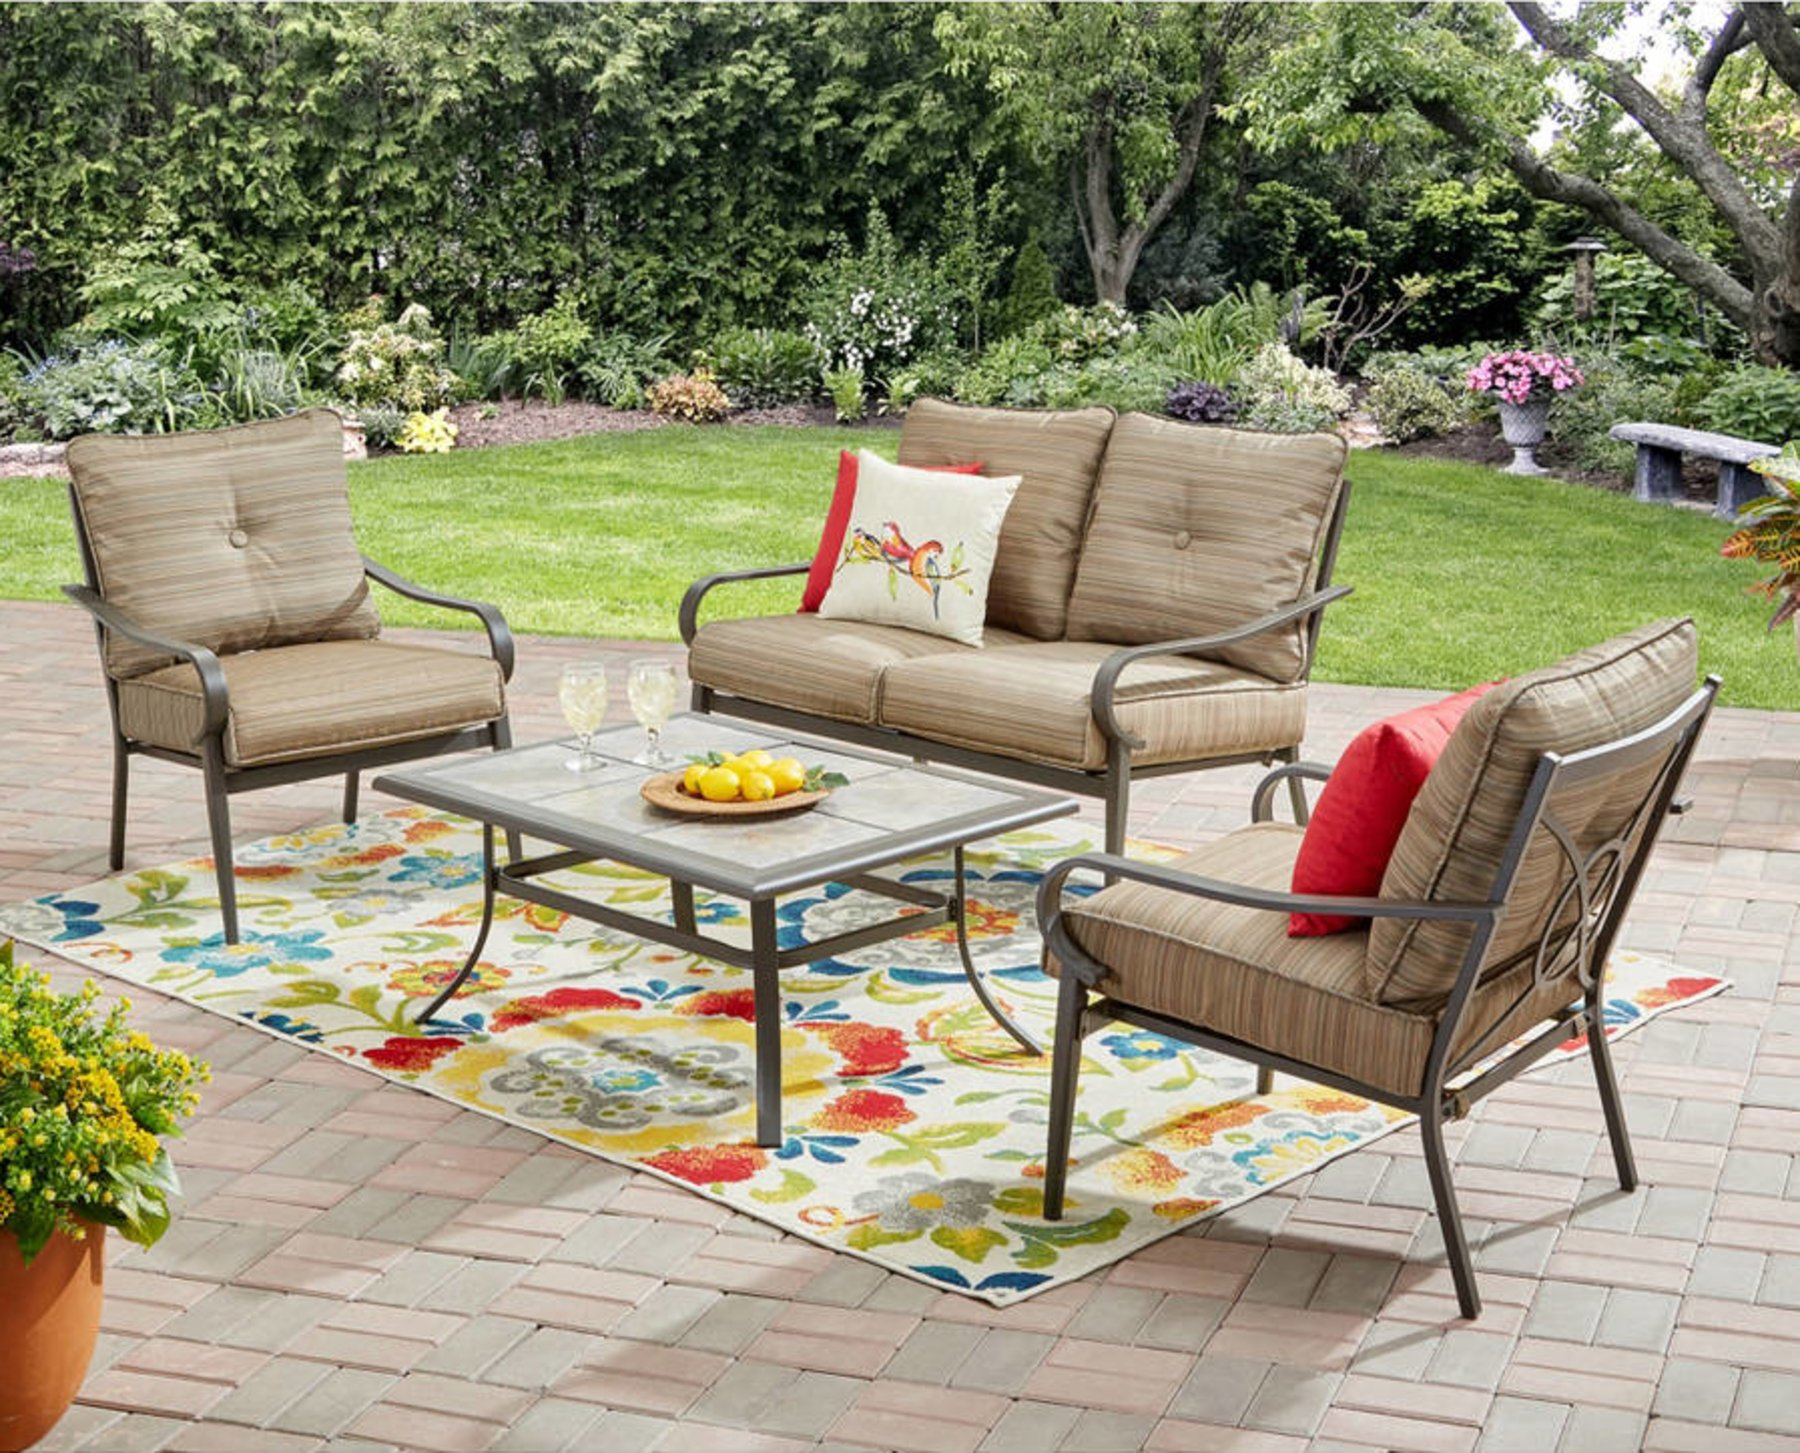 Get Quotations · Mainstays Charleston Park 4 Piece Patio Furniture Set,  Brown